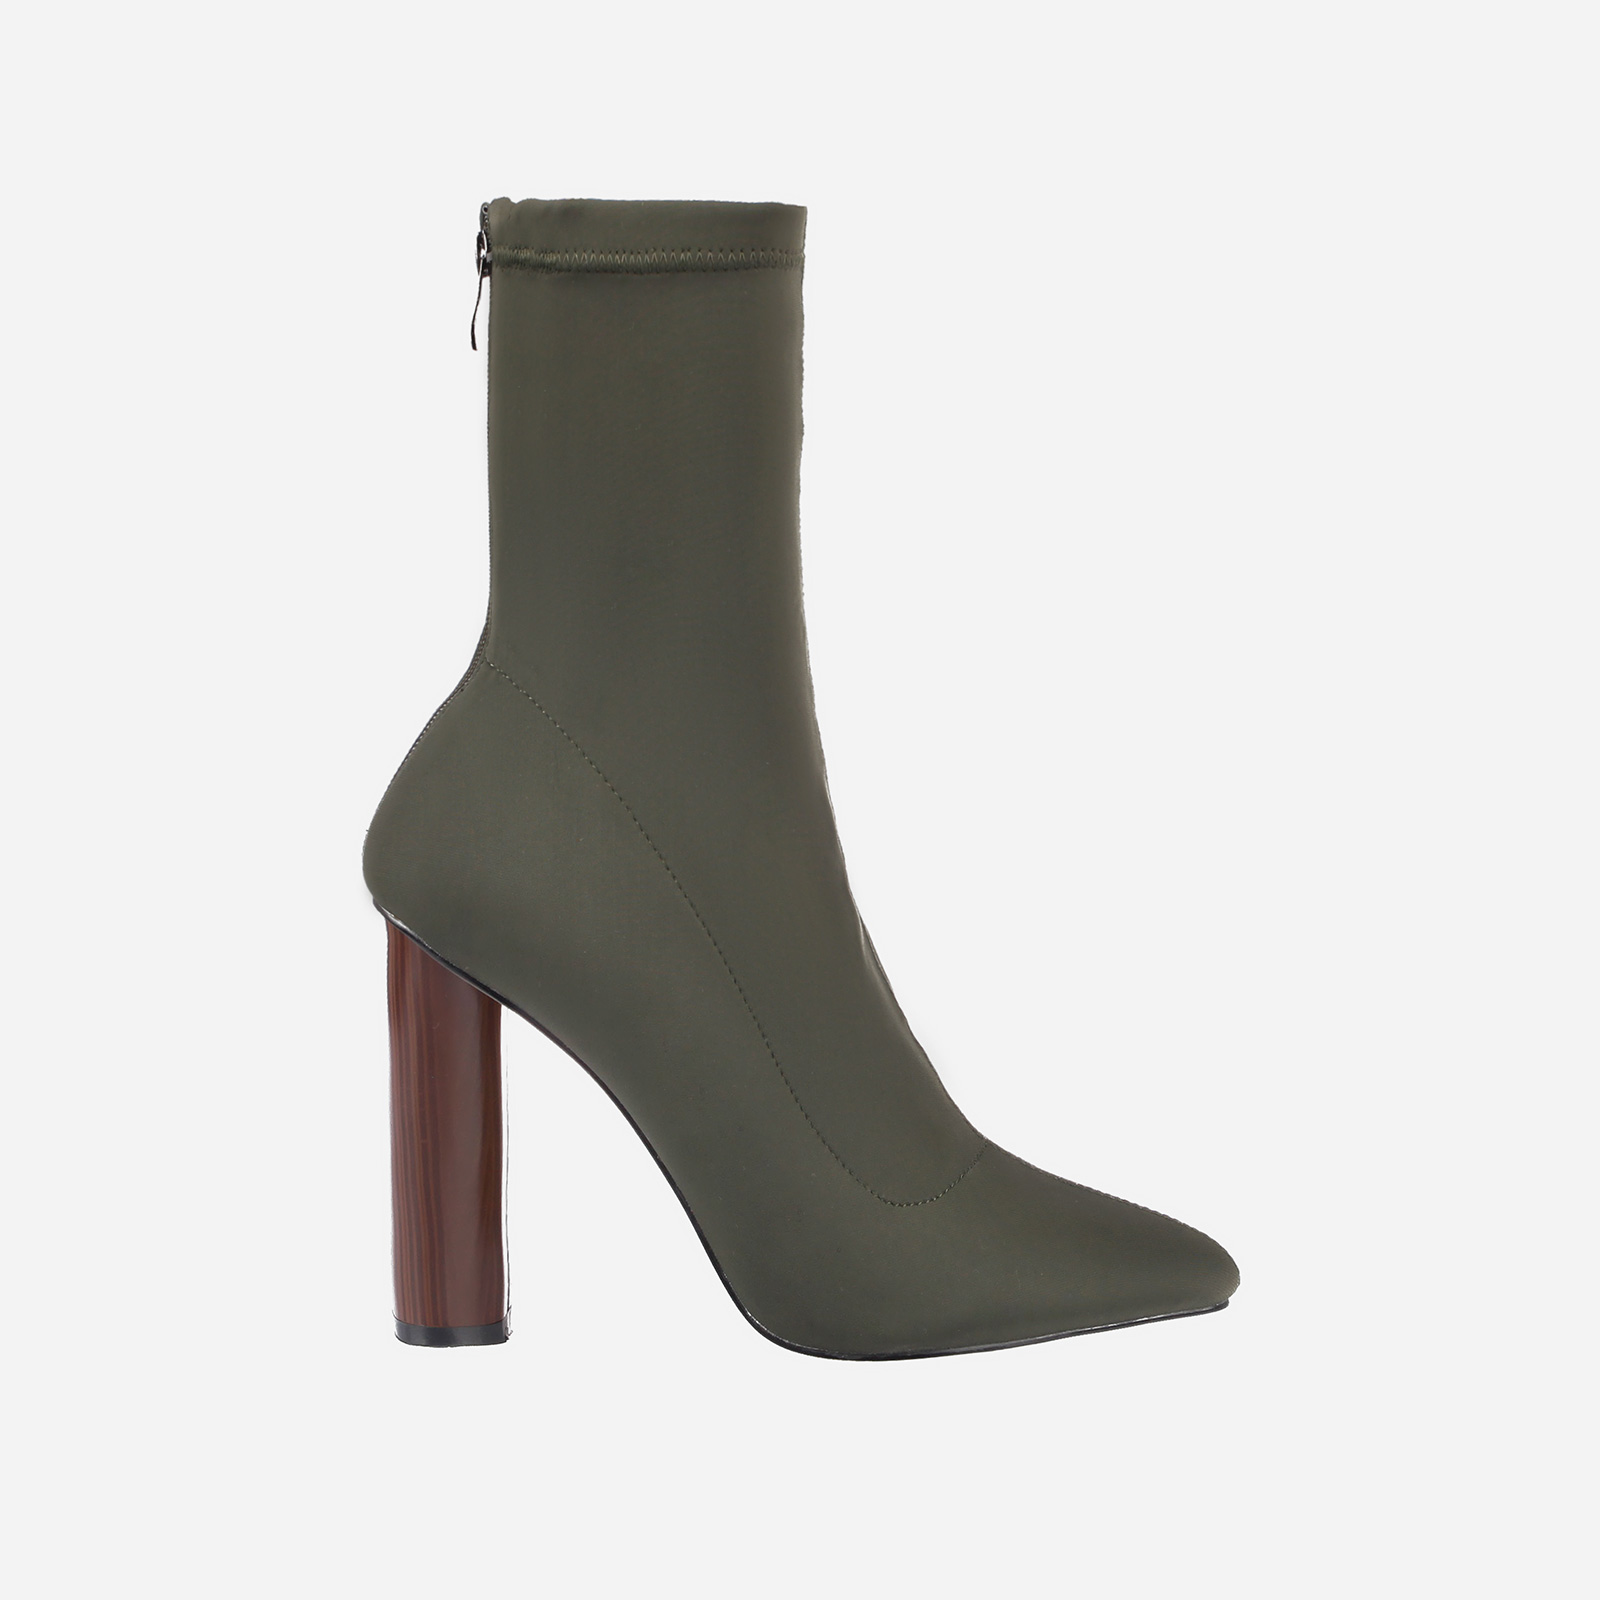 Zina Khaki High Ankle Boot In Lycra Image 1